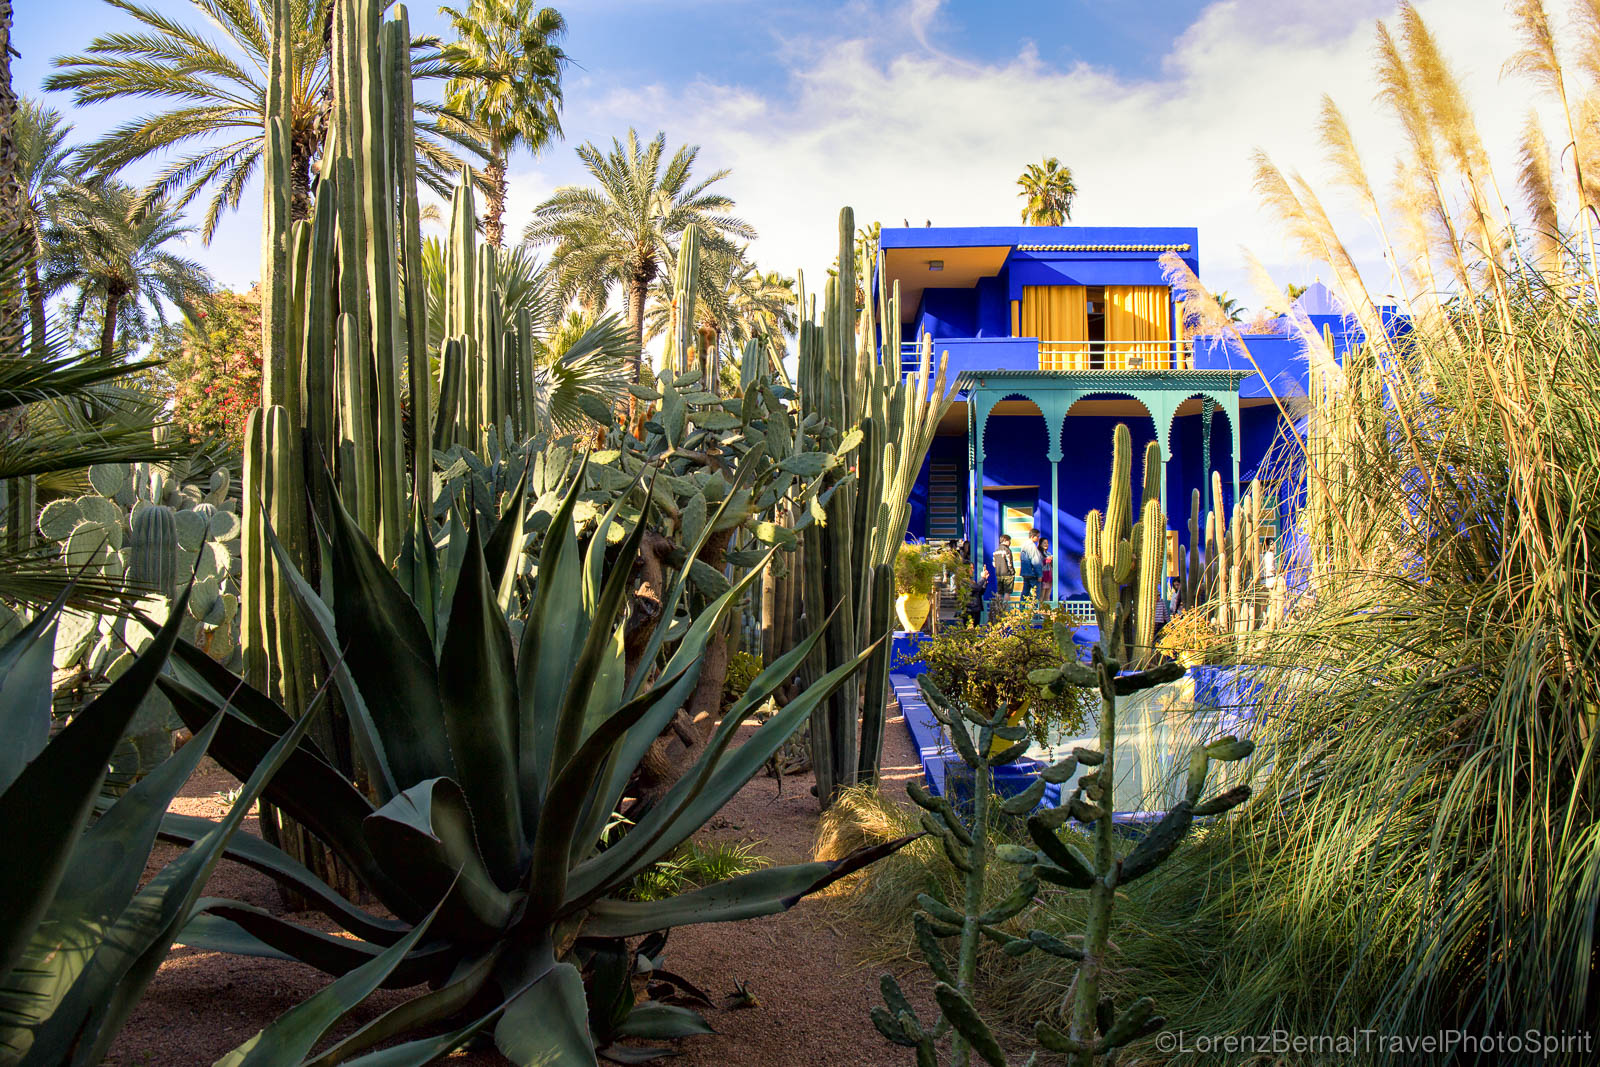 The Majorelle Gardens and the blue-painted Berber museum, Marrakech, Morocco